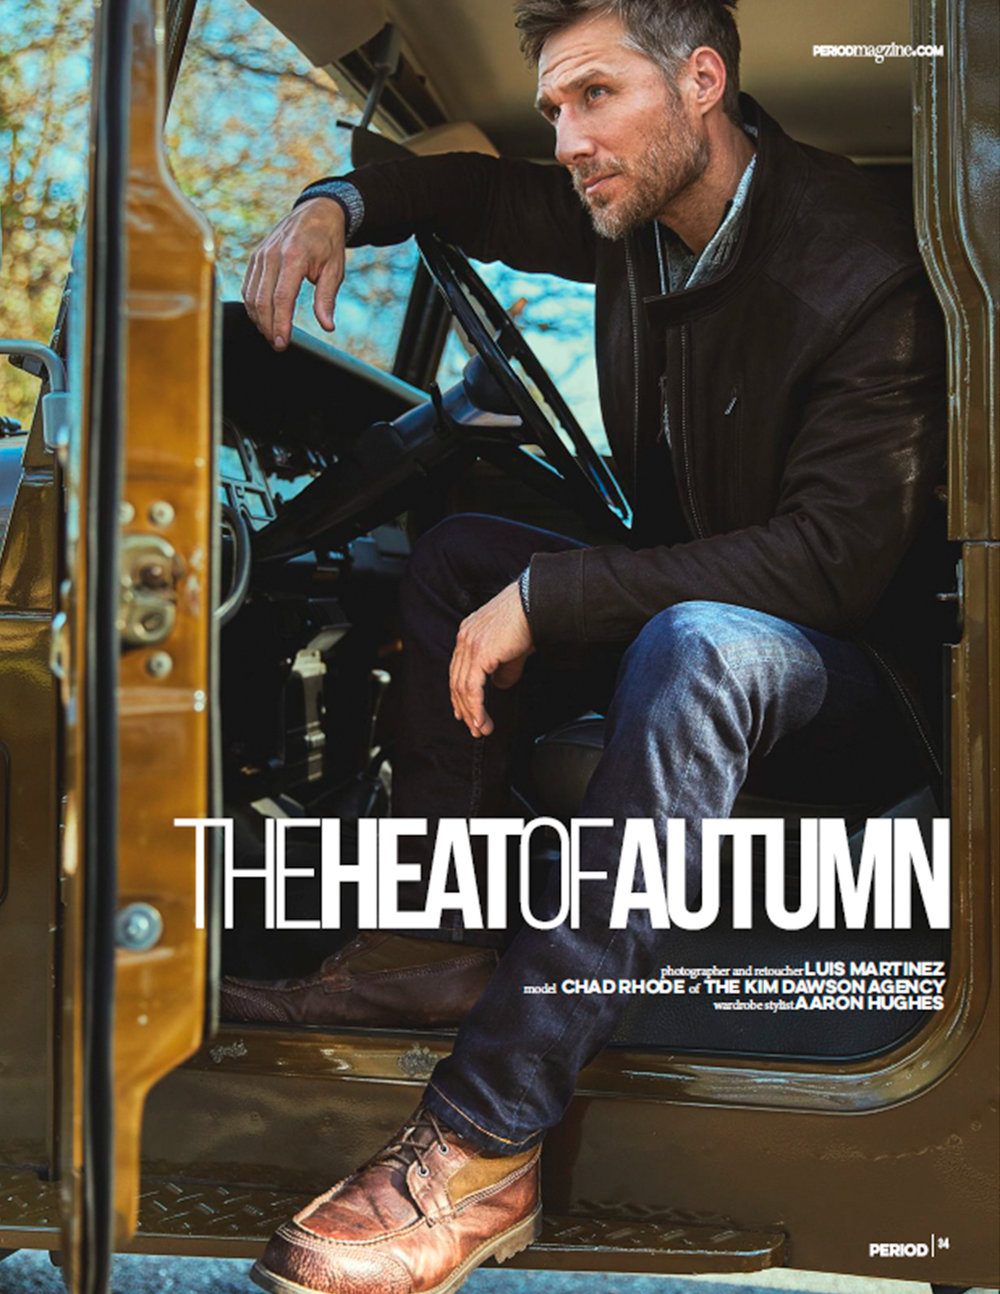 The Heat of Autumn - Editorial for Period MagazinePhotographer and Retouching: Luis Martinez (IG: @luis_martinez93)Styling: Aaron HughesModel: Chad Rohde (IG: @chad_rohde) from The Kim Dawson Agency.